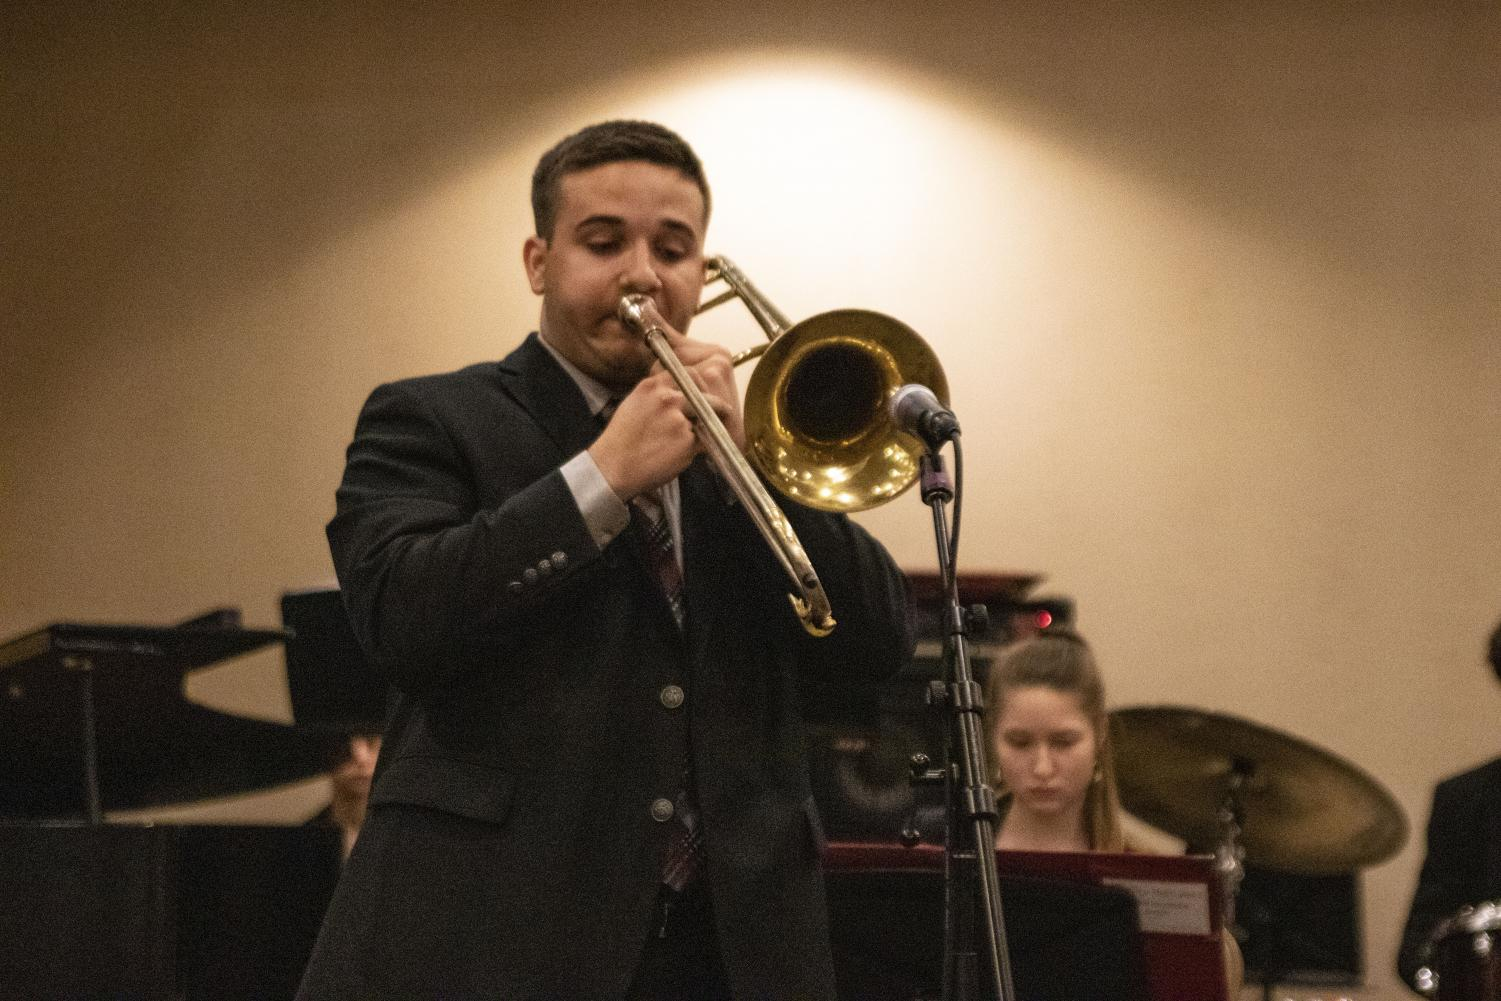 Kolbe+Schnoebelen+%2720+soloing+on+trombone.+Schnoebelen+was+one+of+three+city+high+students+who+also+participate+in+All+State+Jazz